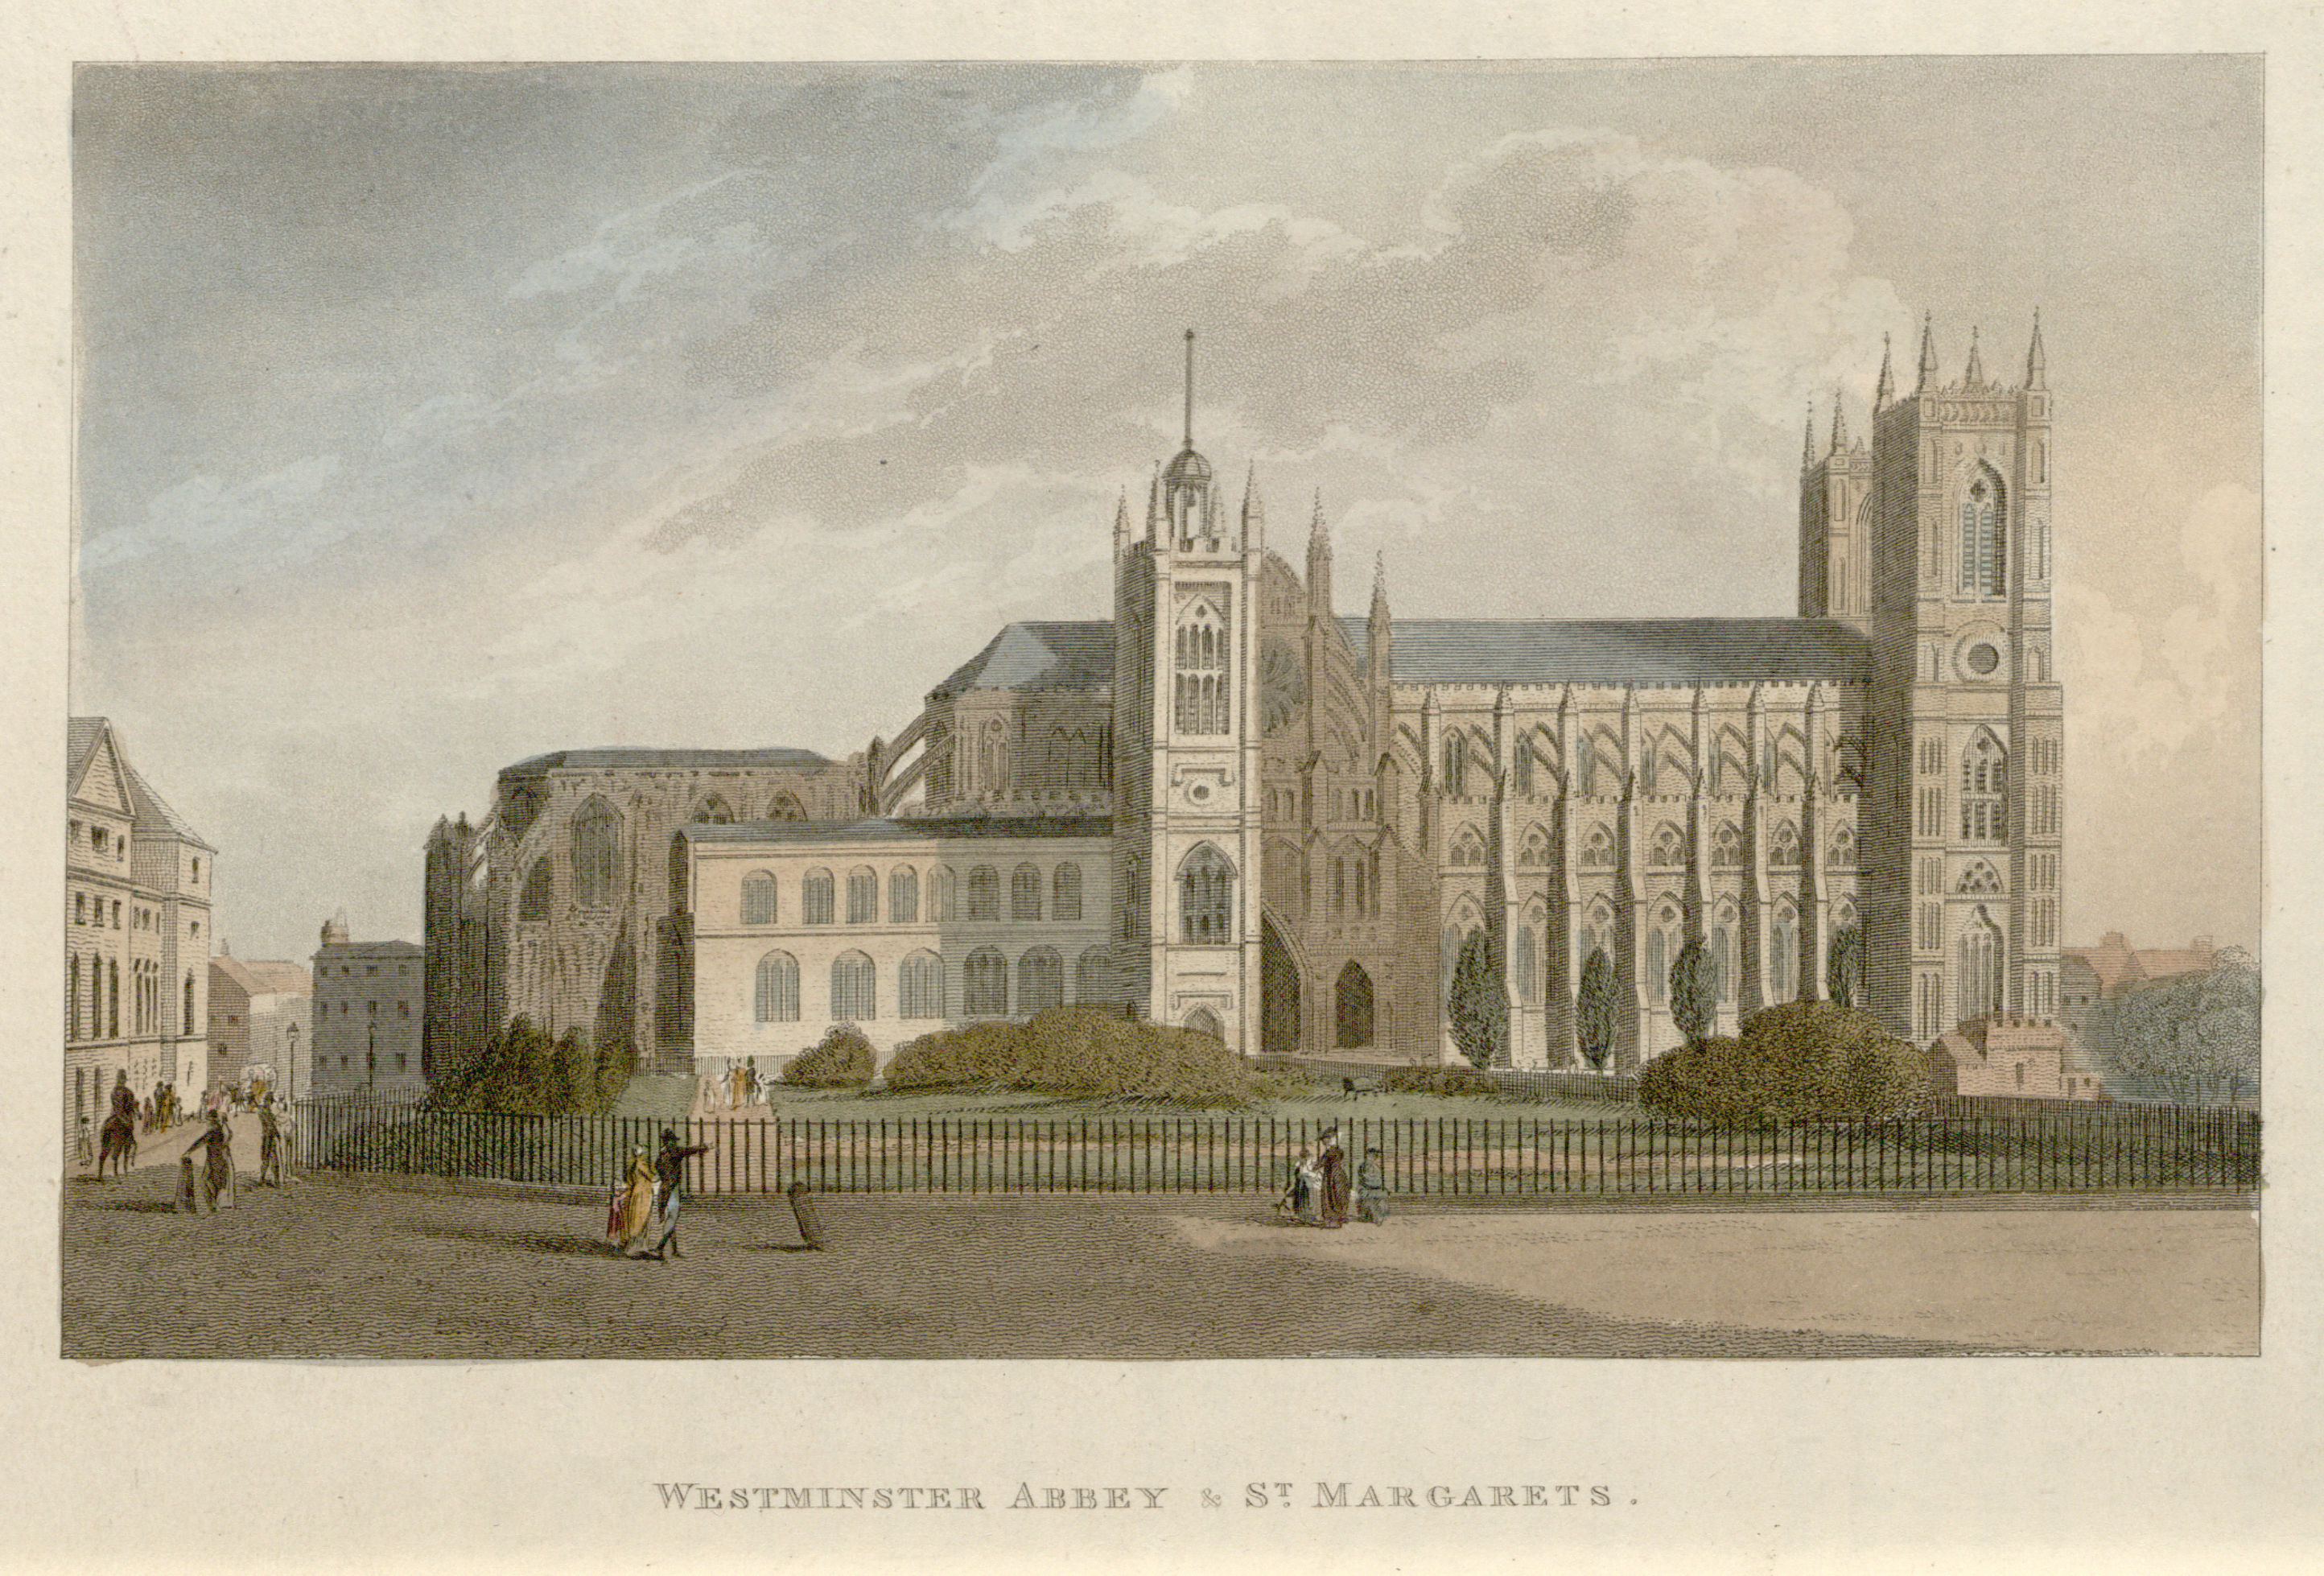 11 - Papworth - Westminster Abbey & St Margaret's